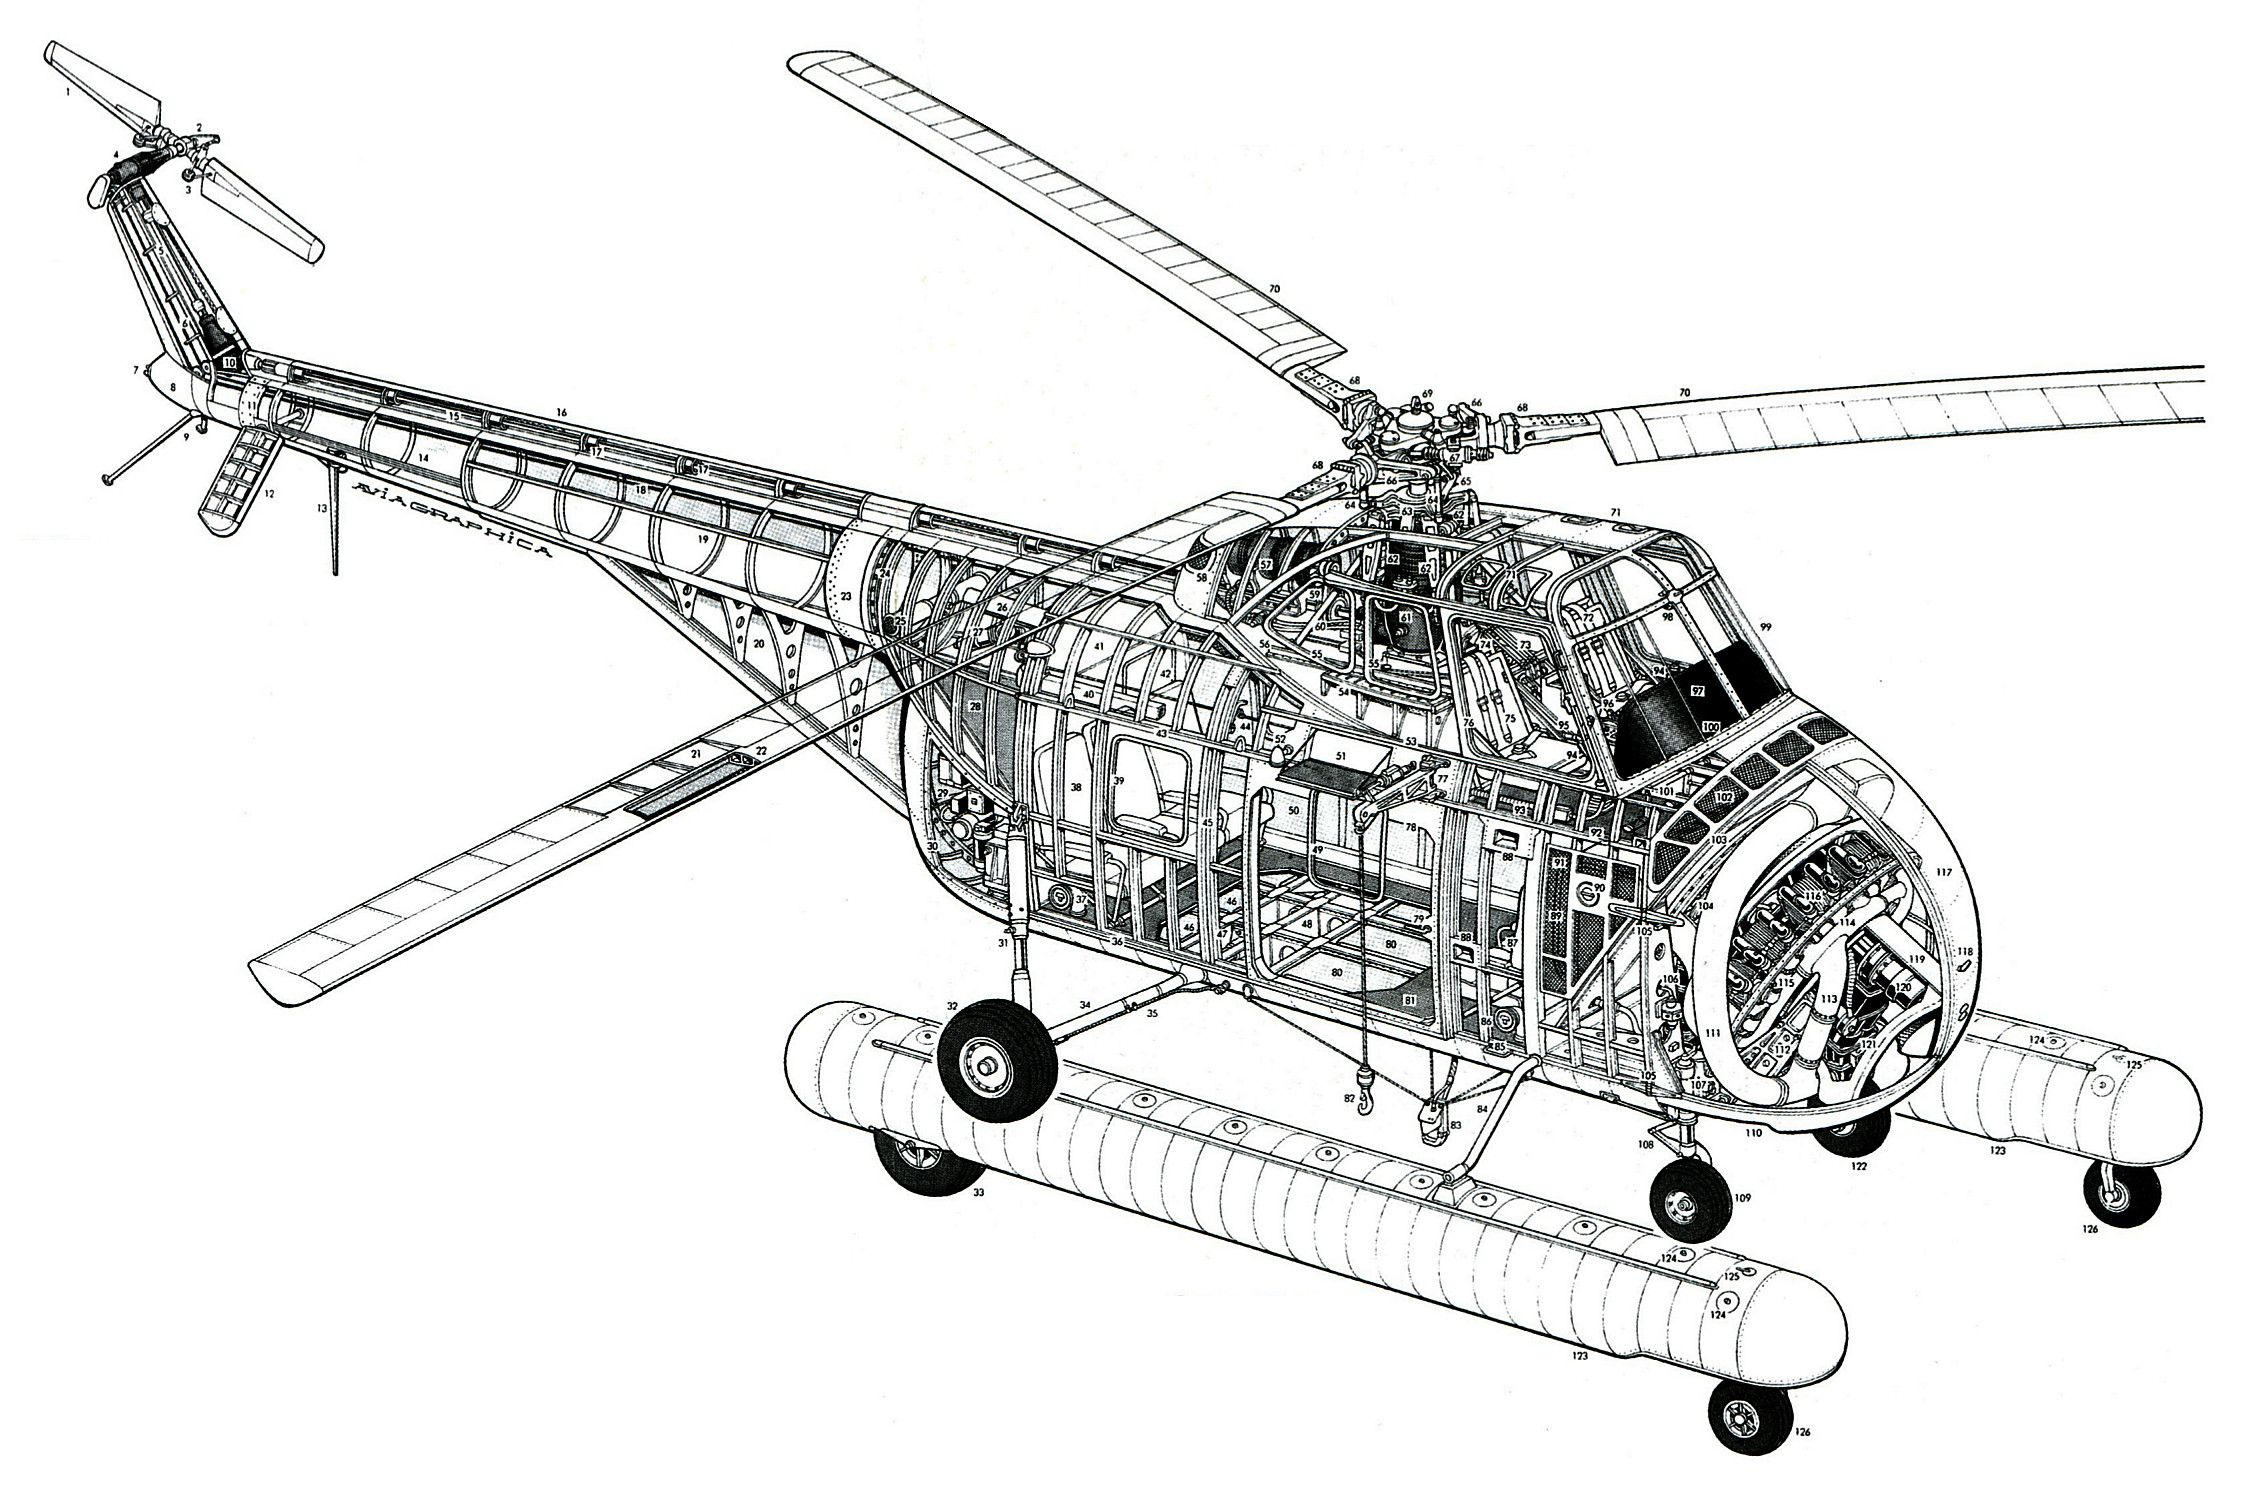 Pin about Airplane drawing and Aircraft design on